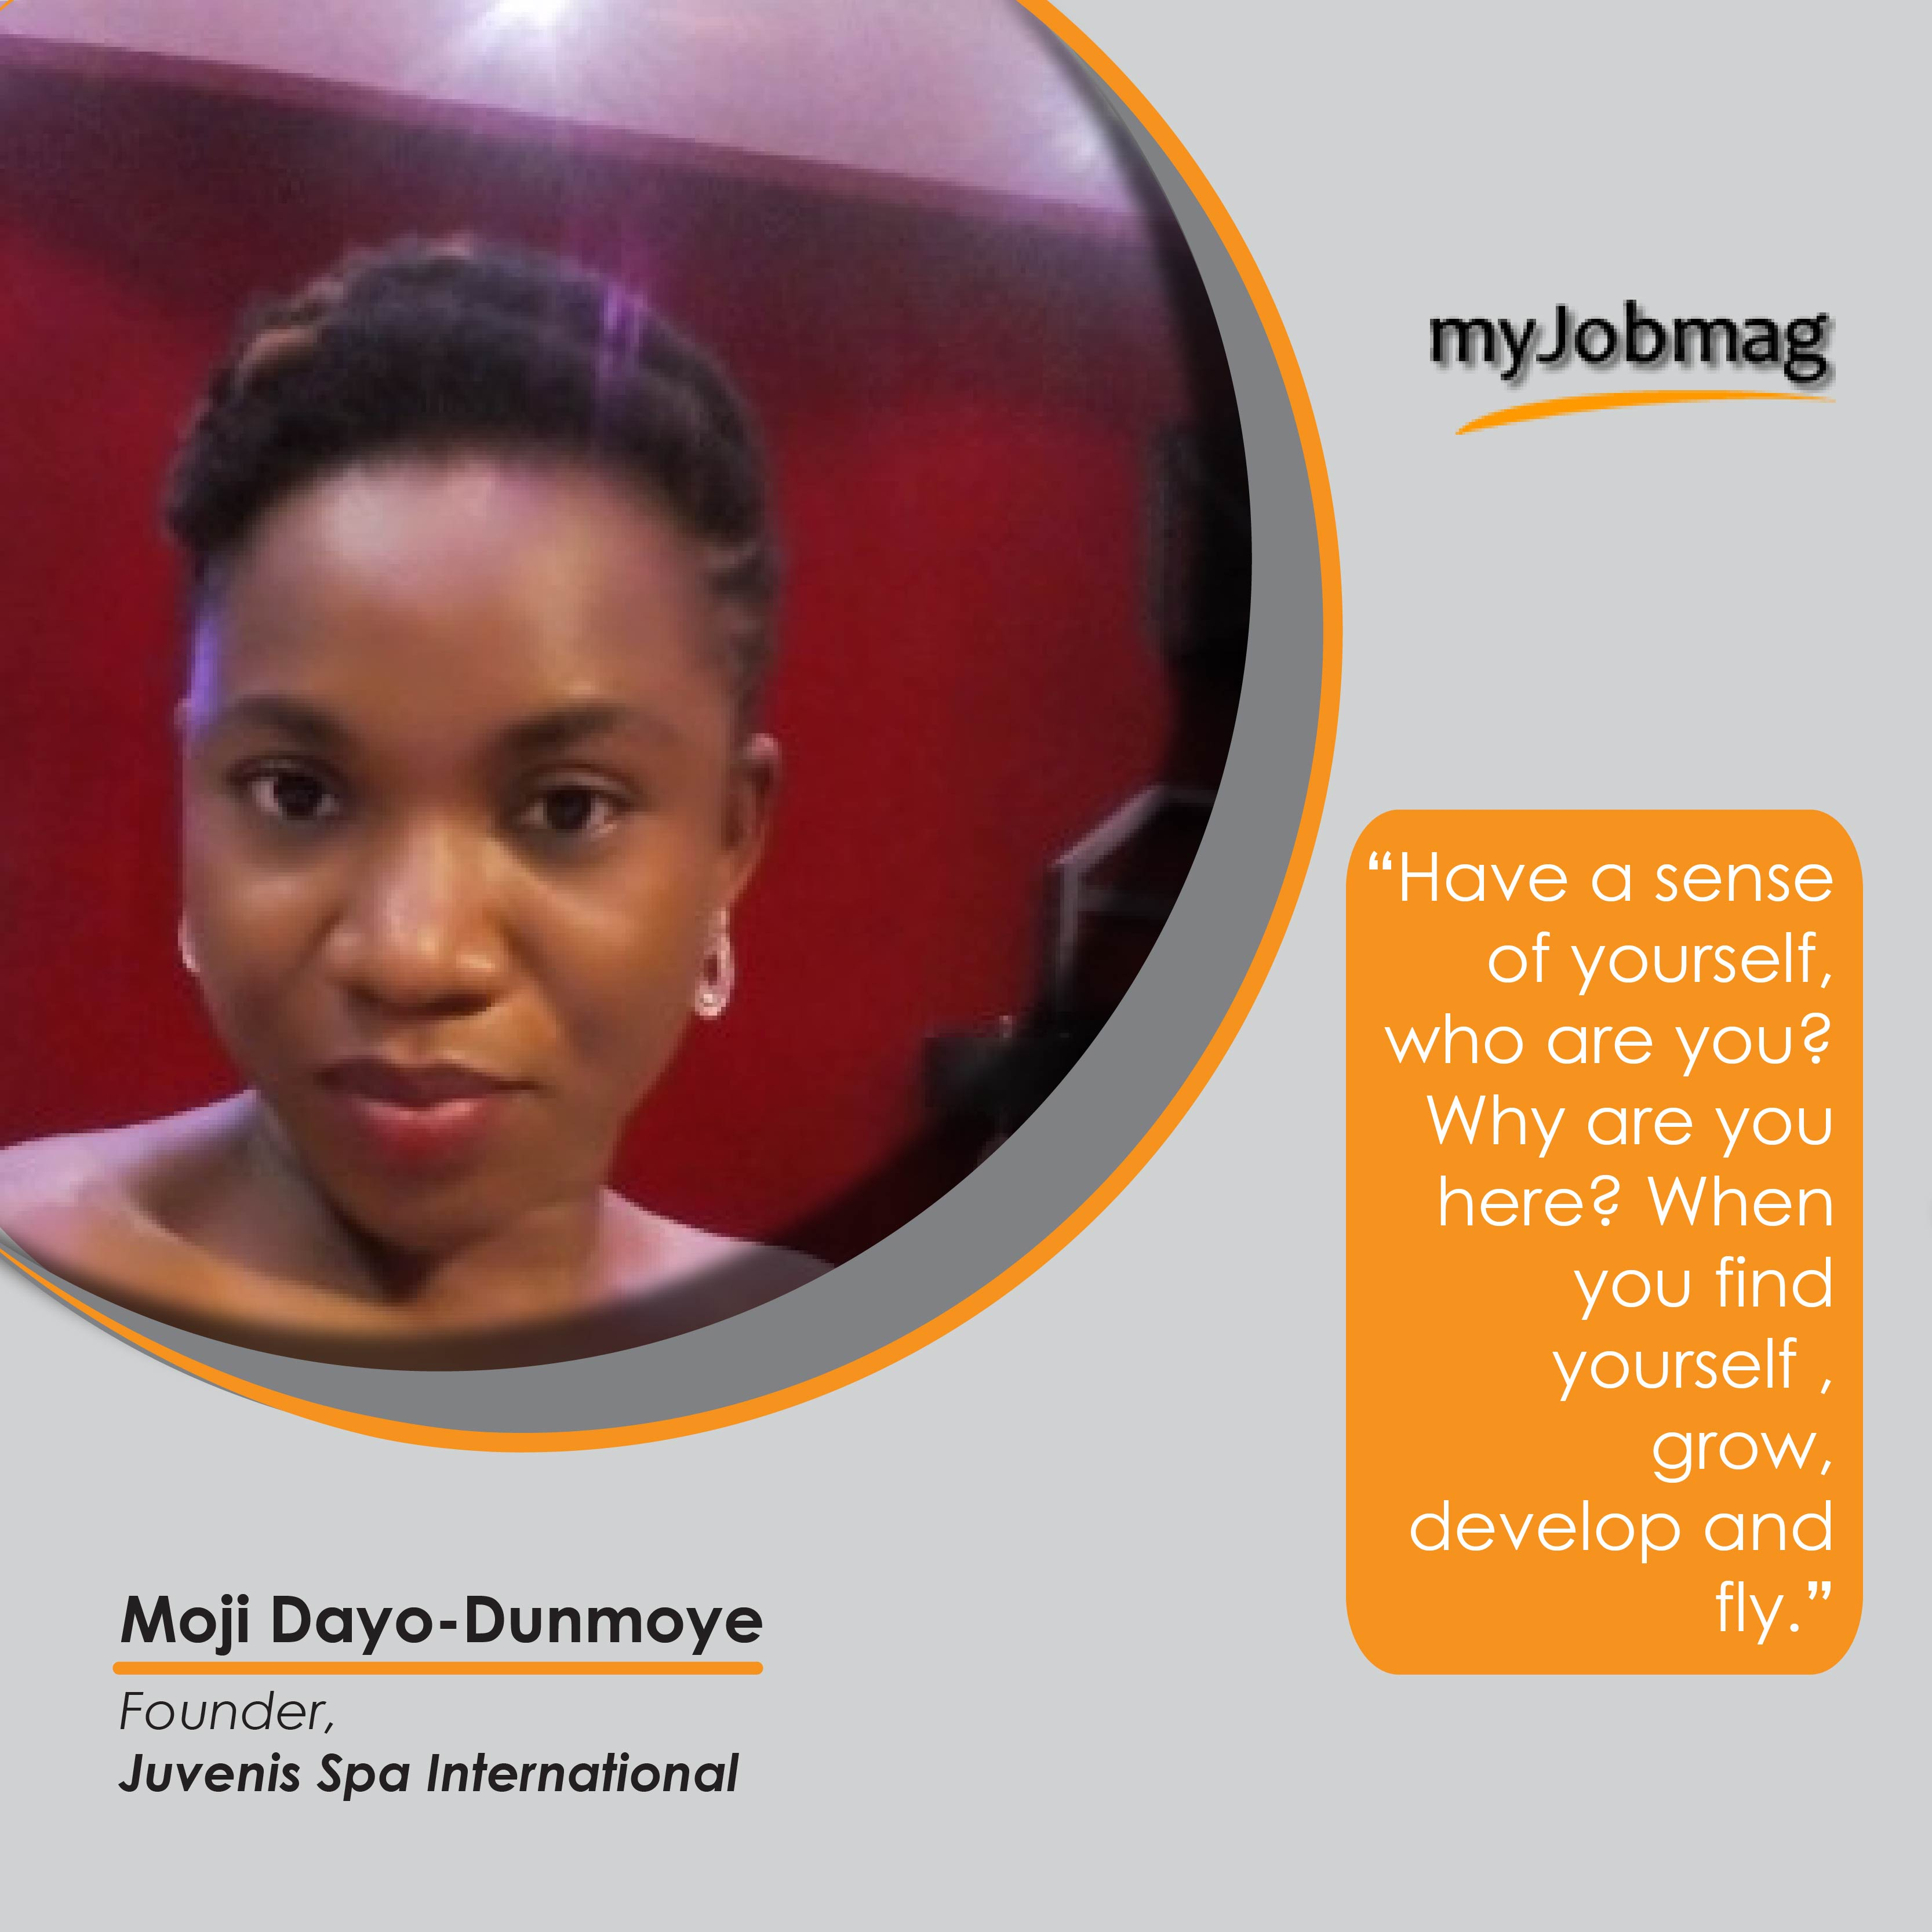 Moji Dayo Dunmoye career advice MyJobmag